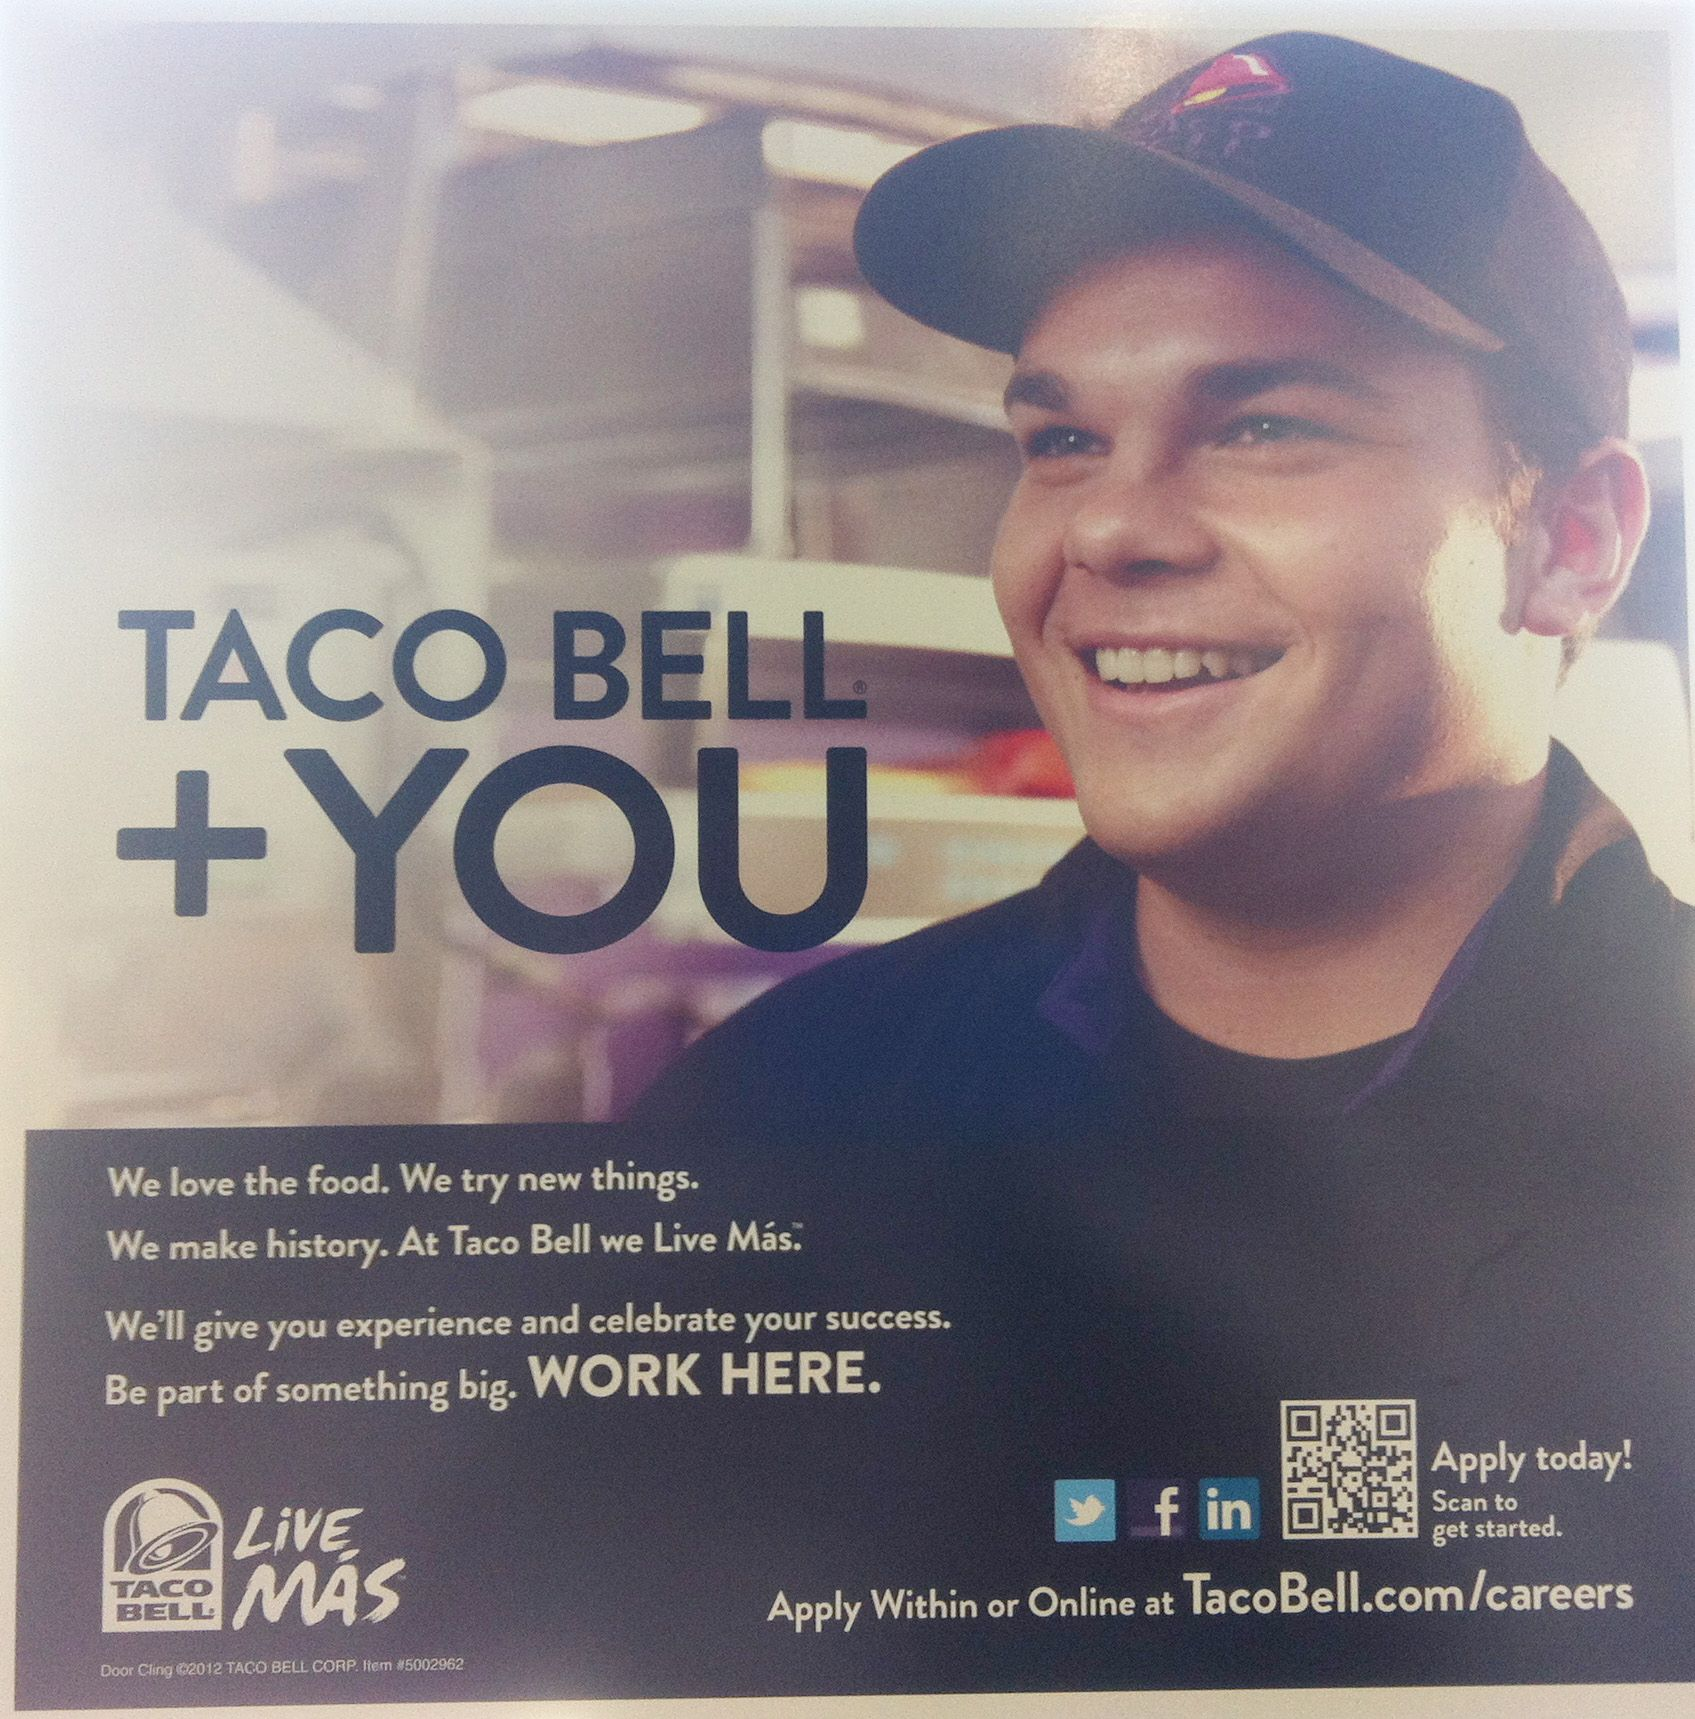 Taco Bell is hiring... with QR codes Recruitment poster